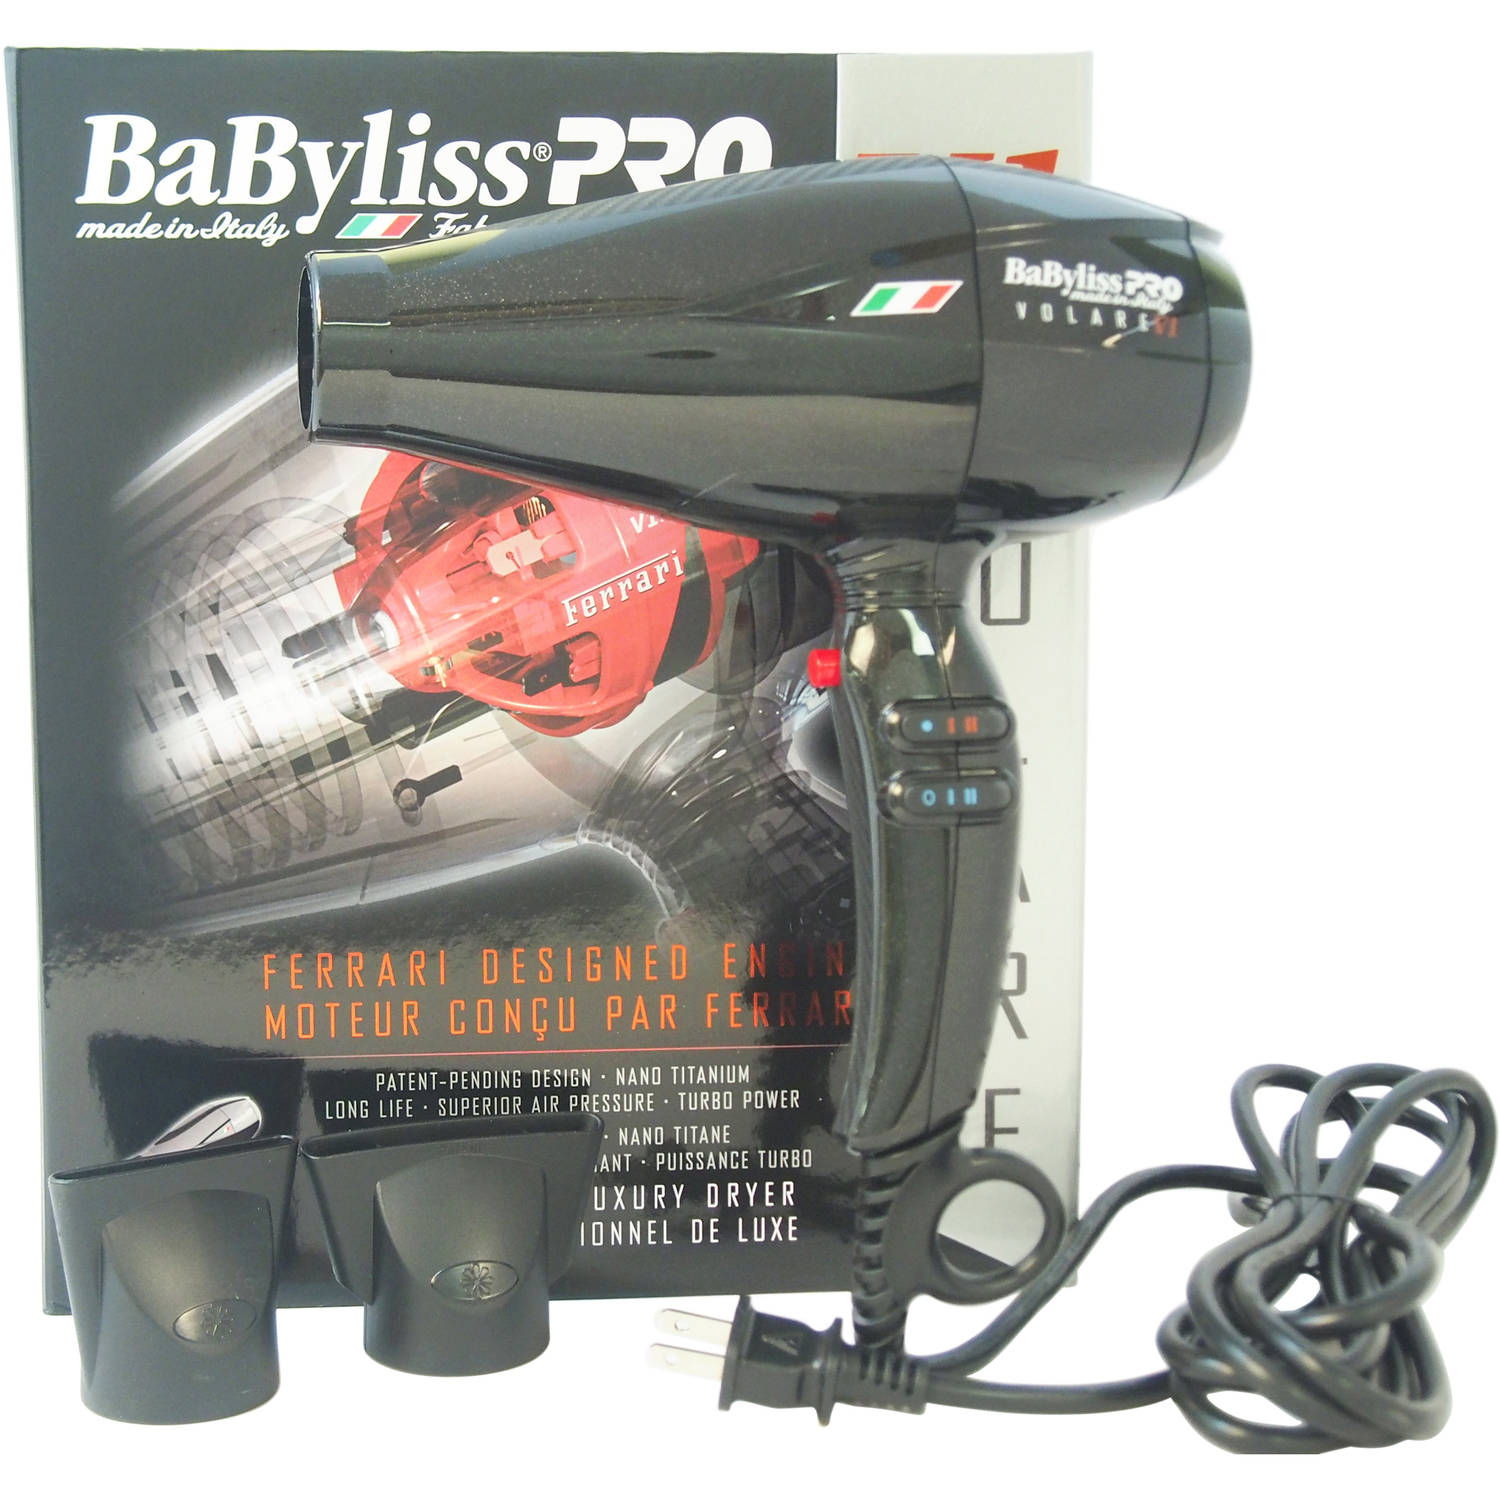 Babyliss PRO V1 Volare Ferrari Designed Engine Hair Dryer